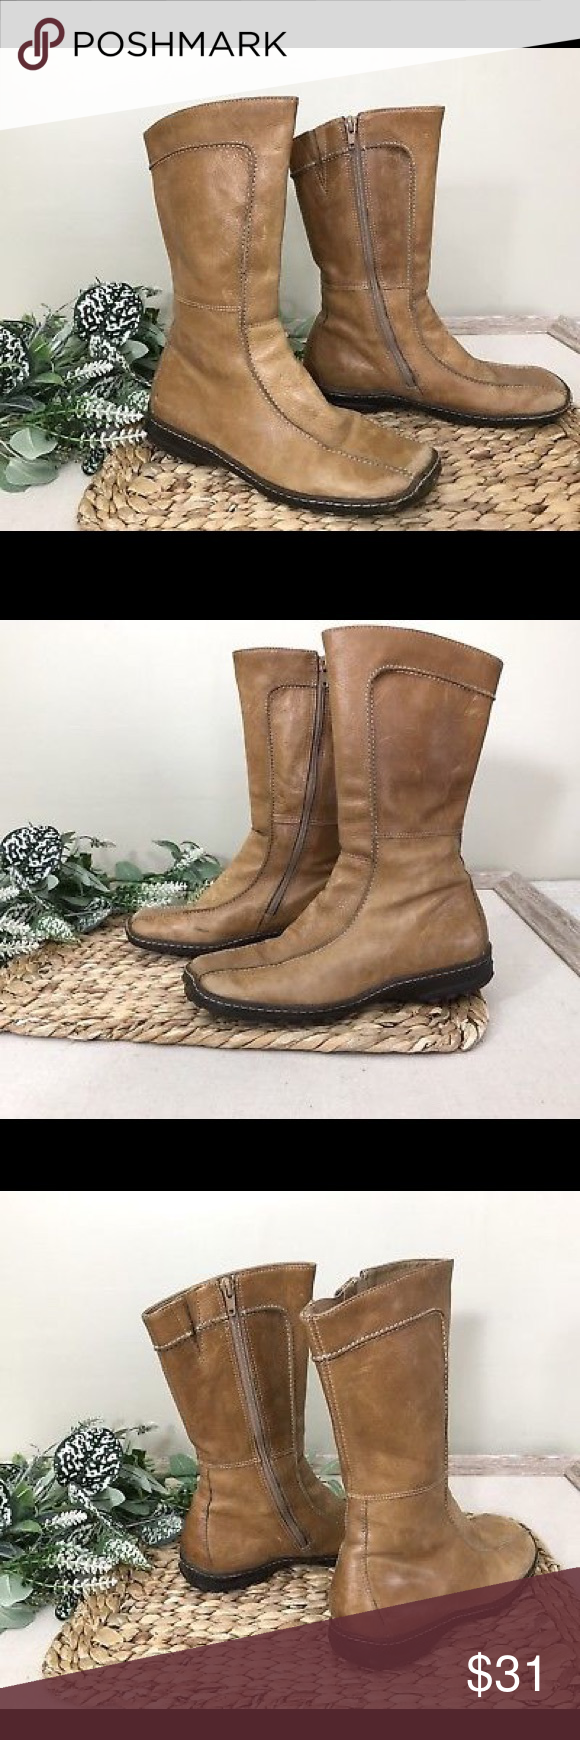 679d7084f6f Steve Madden Tan Leather Mid Calf Boots sz 8 Women s Steve Madden Boots Size  8B Shaft Height 9 1 2 inches Inside zip Rubber low wedge sole Contrast ...